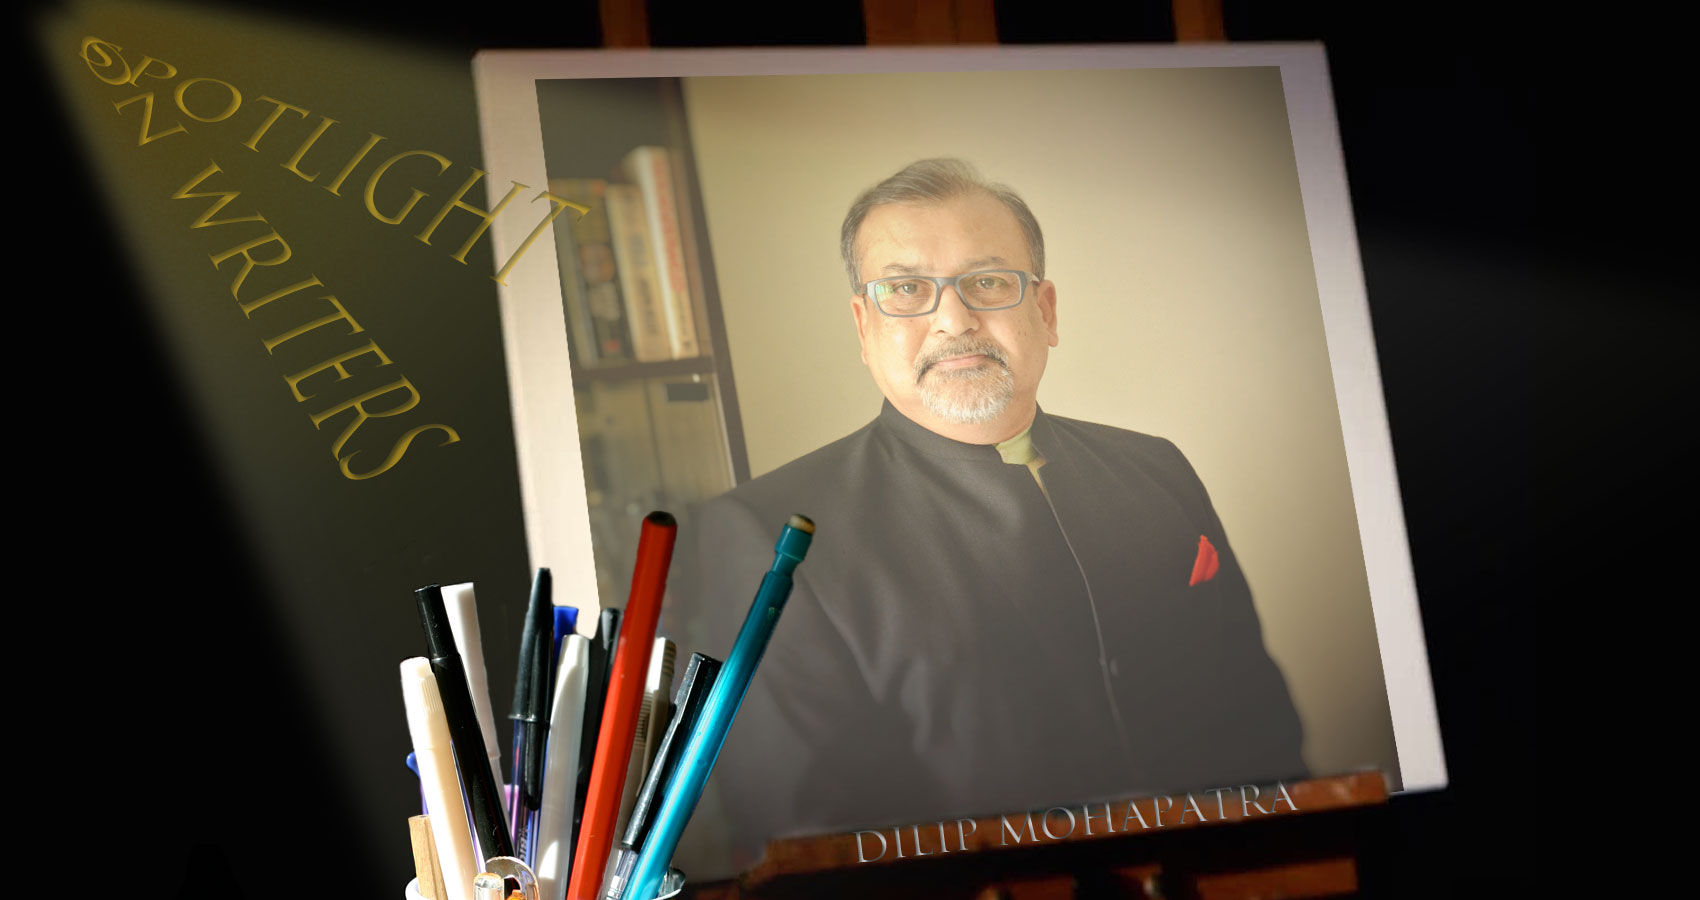 Spotlight On Writers - Dilip Mohapatra at Spillwords.com